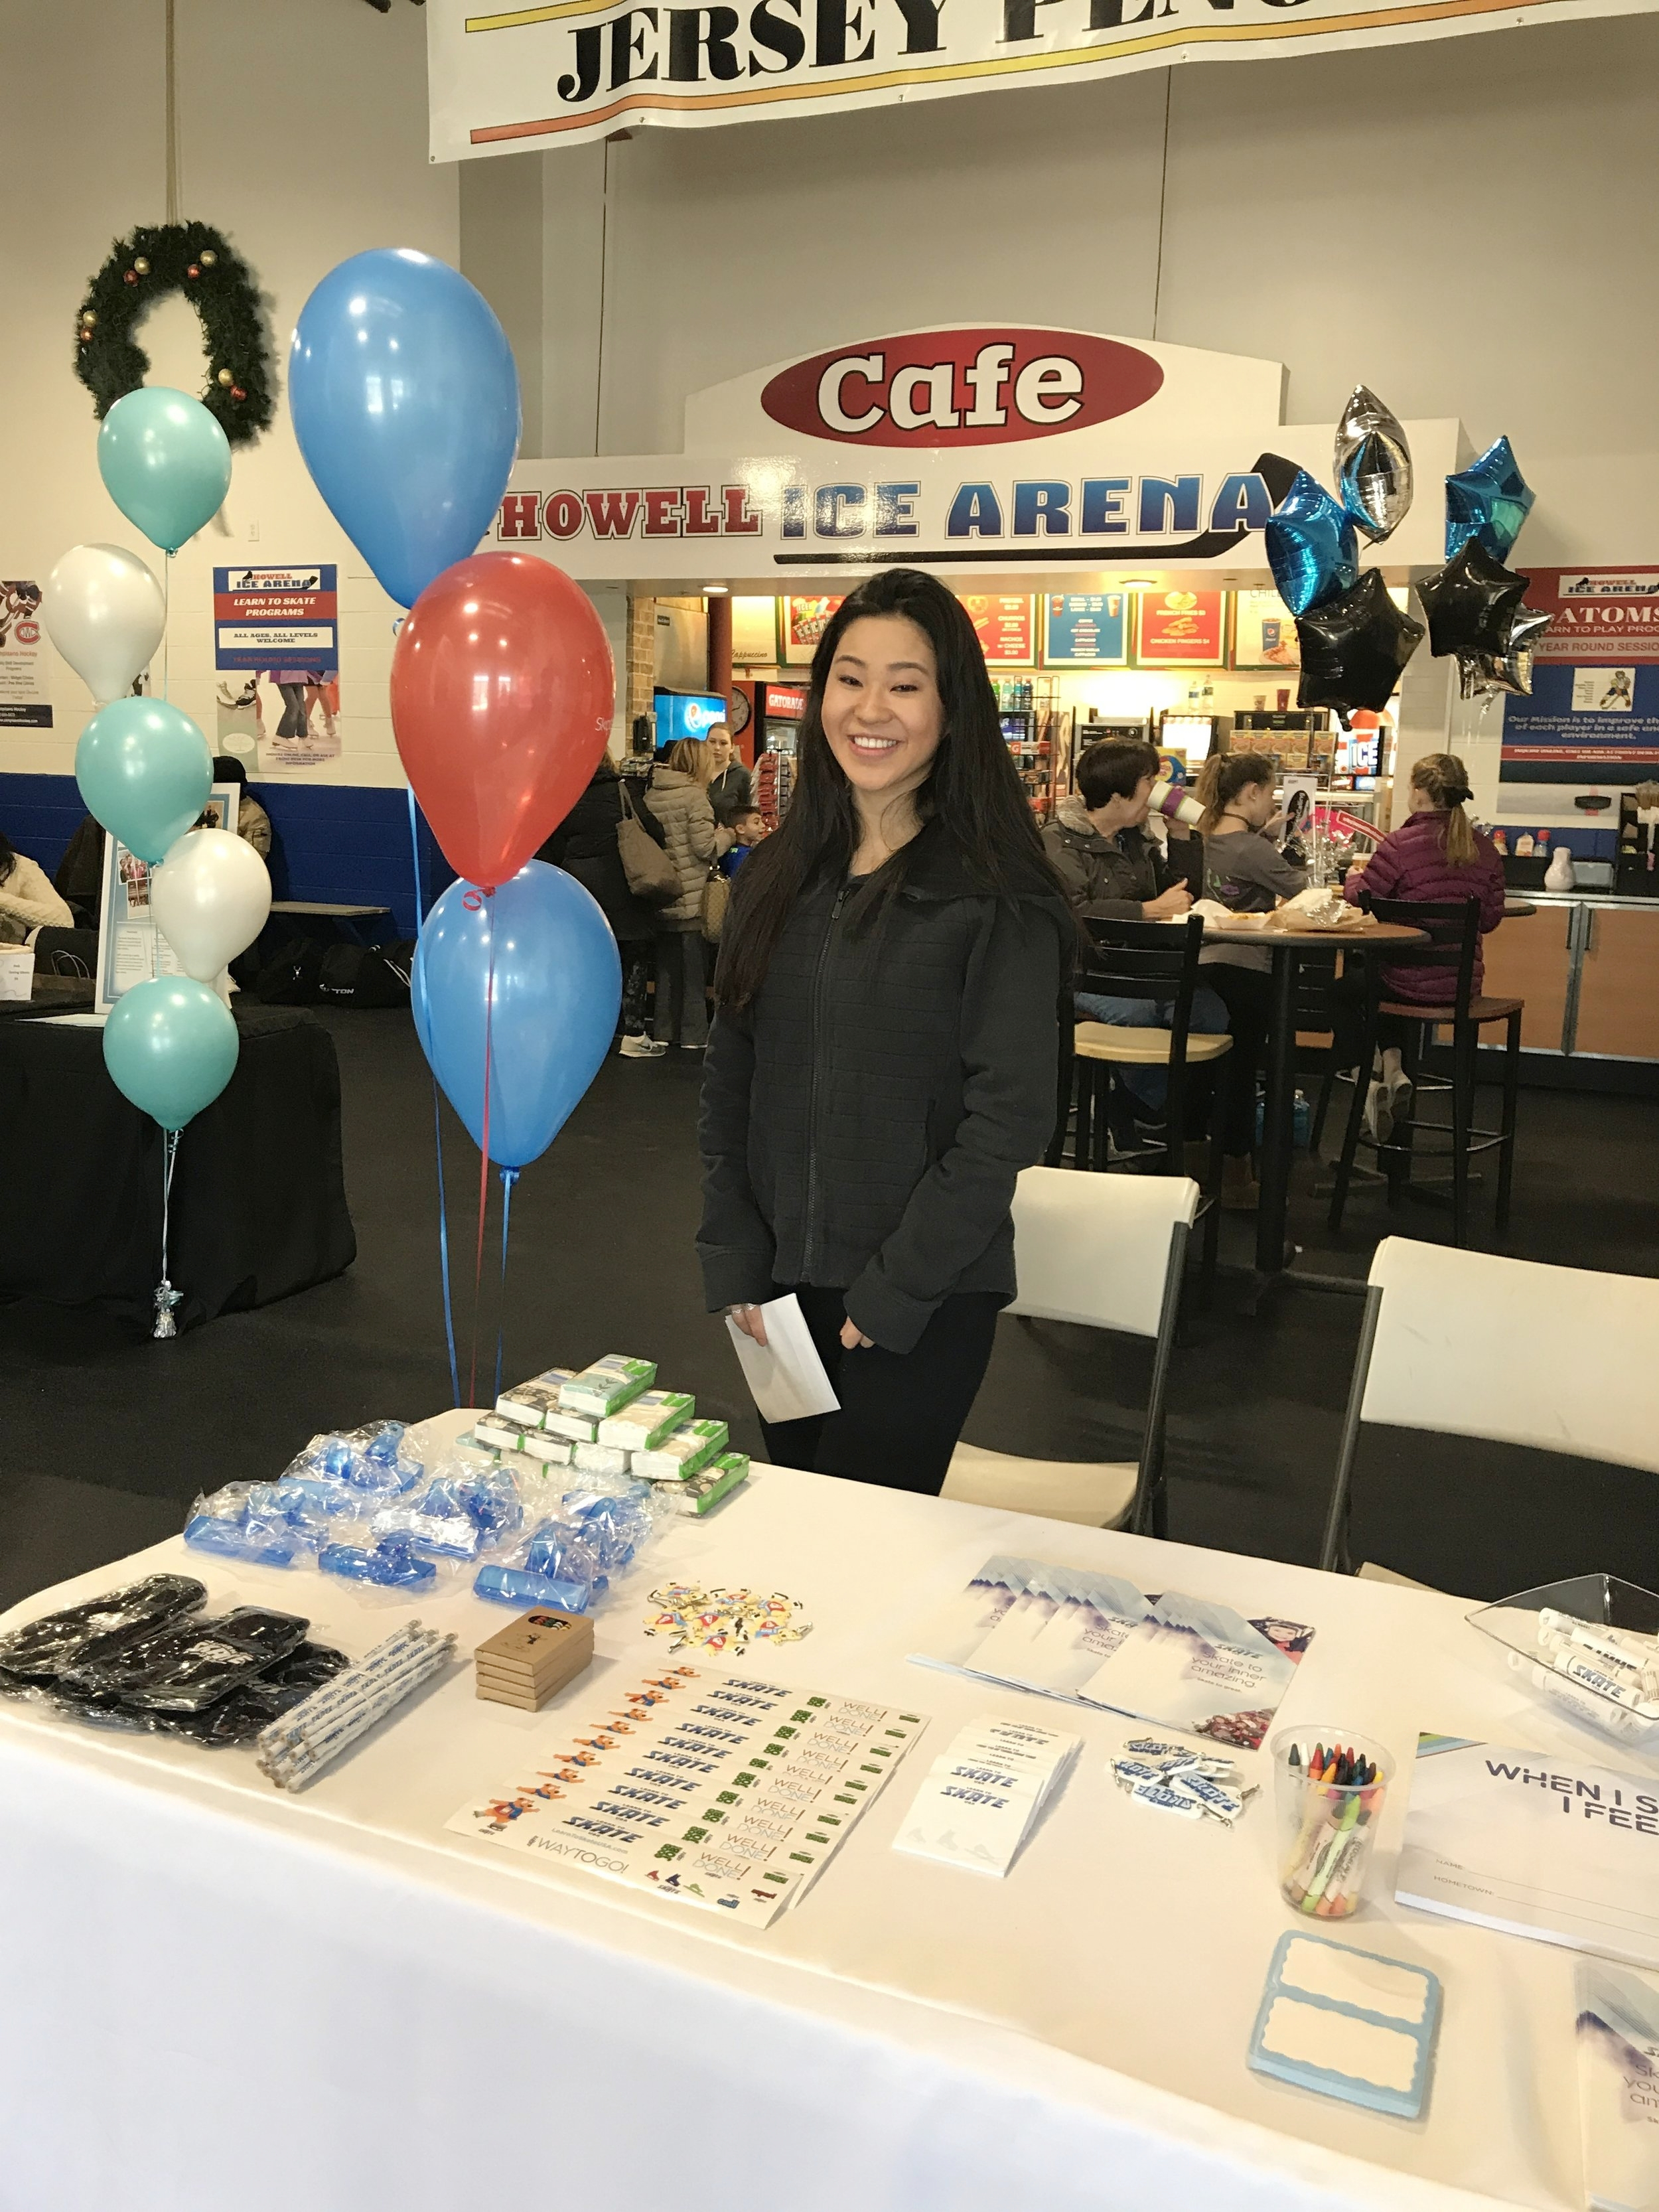 Setting up registration table and putting together goodie bags filled with U.S. Figure Skating promotional items for all the skaters